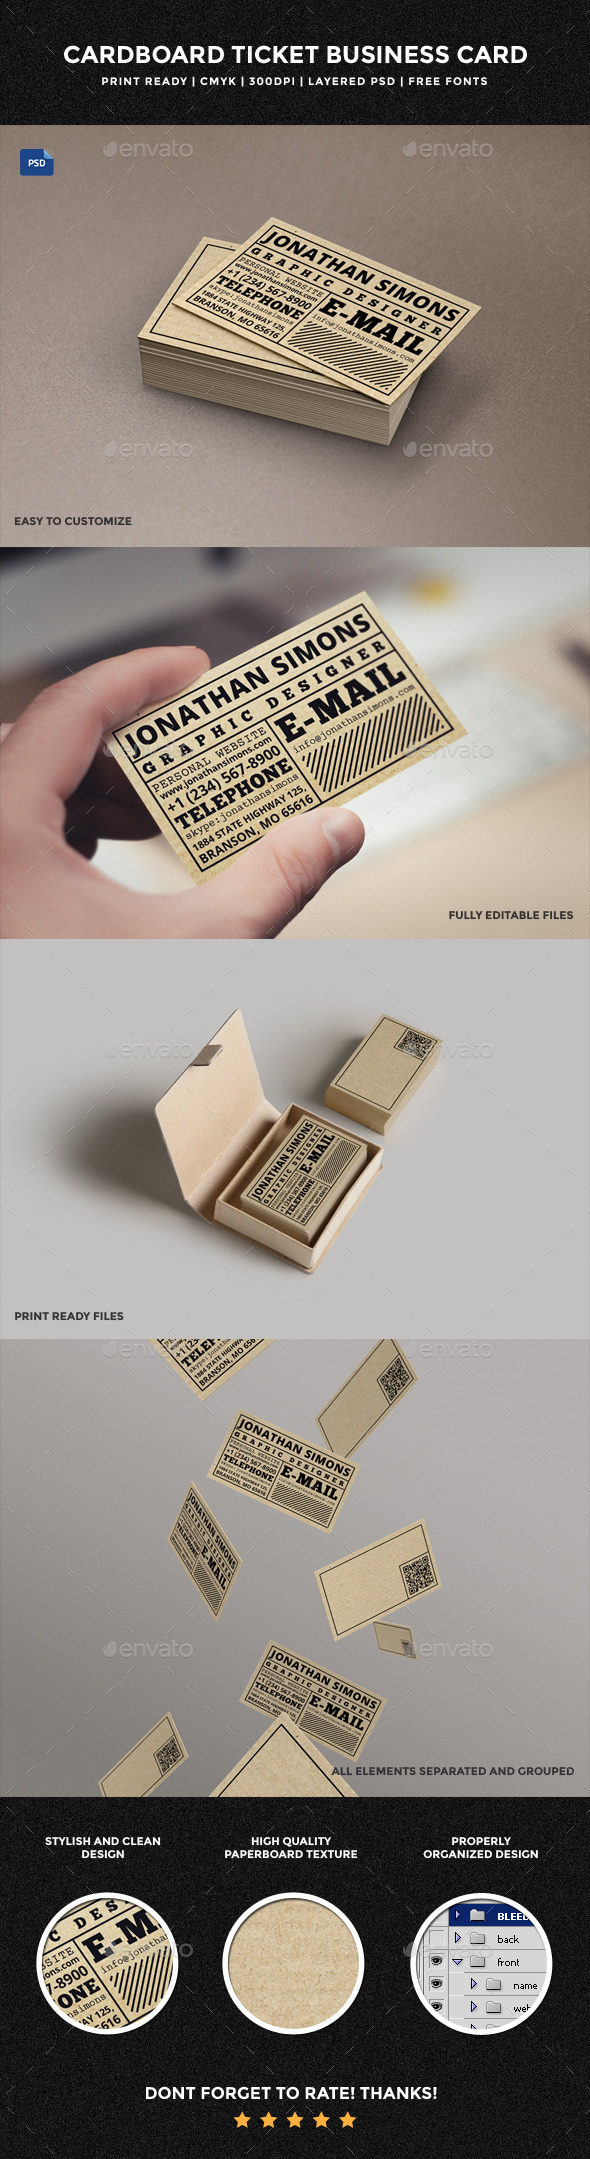 Cardboard Ticket Business Card - 30 - Creative Business Cards